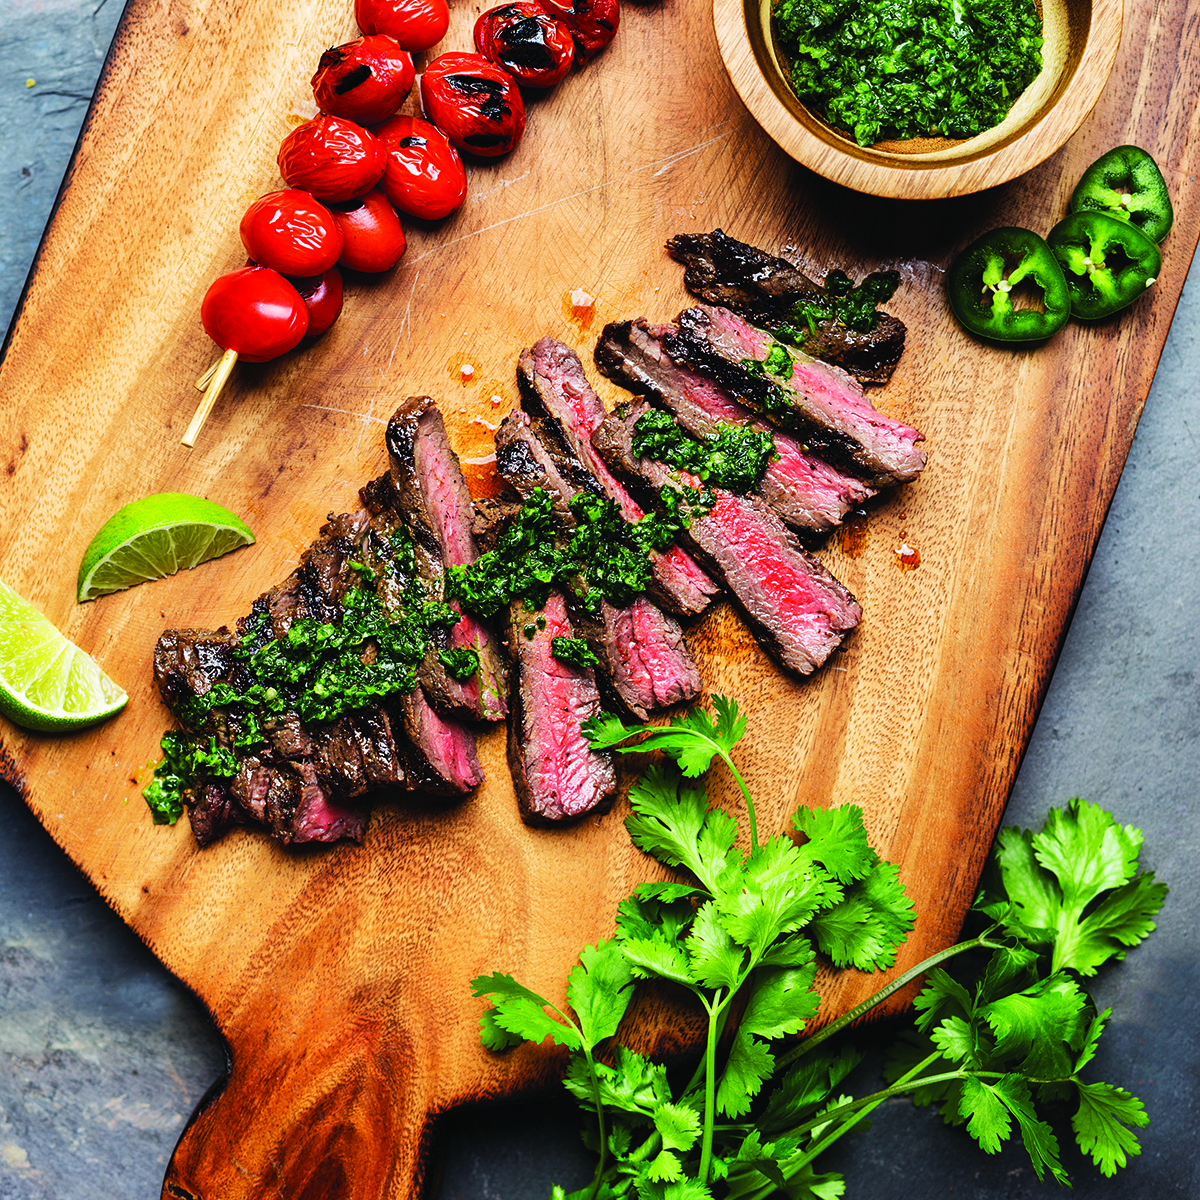 Grilled Grass-Fed Sirloin with Cilantro Chimichurri & Blistered Tomatoes